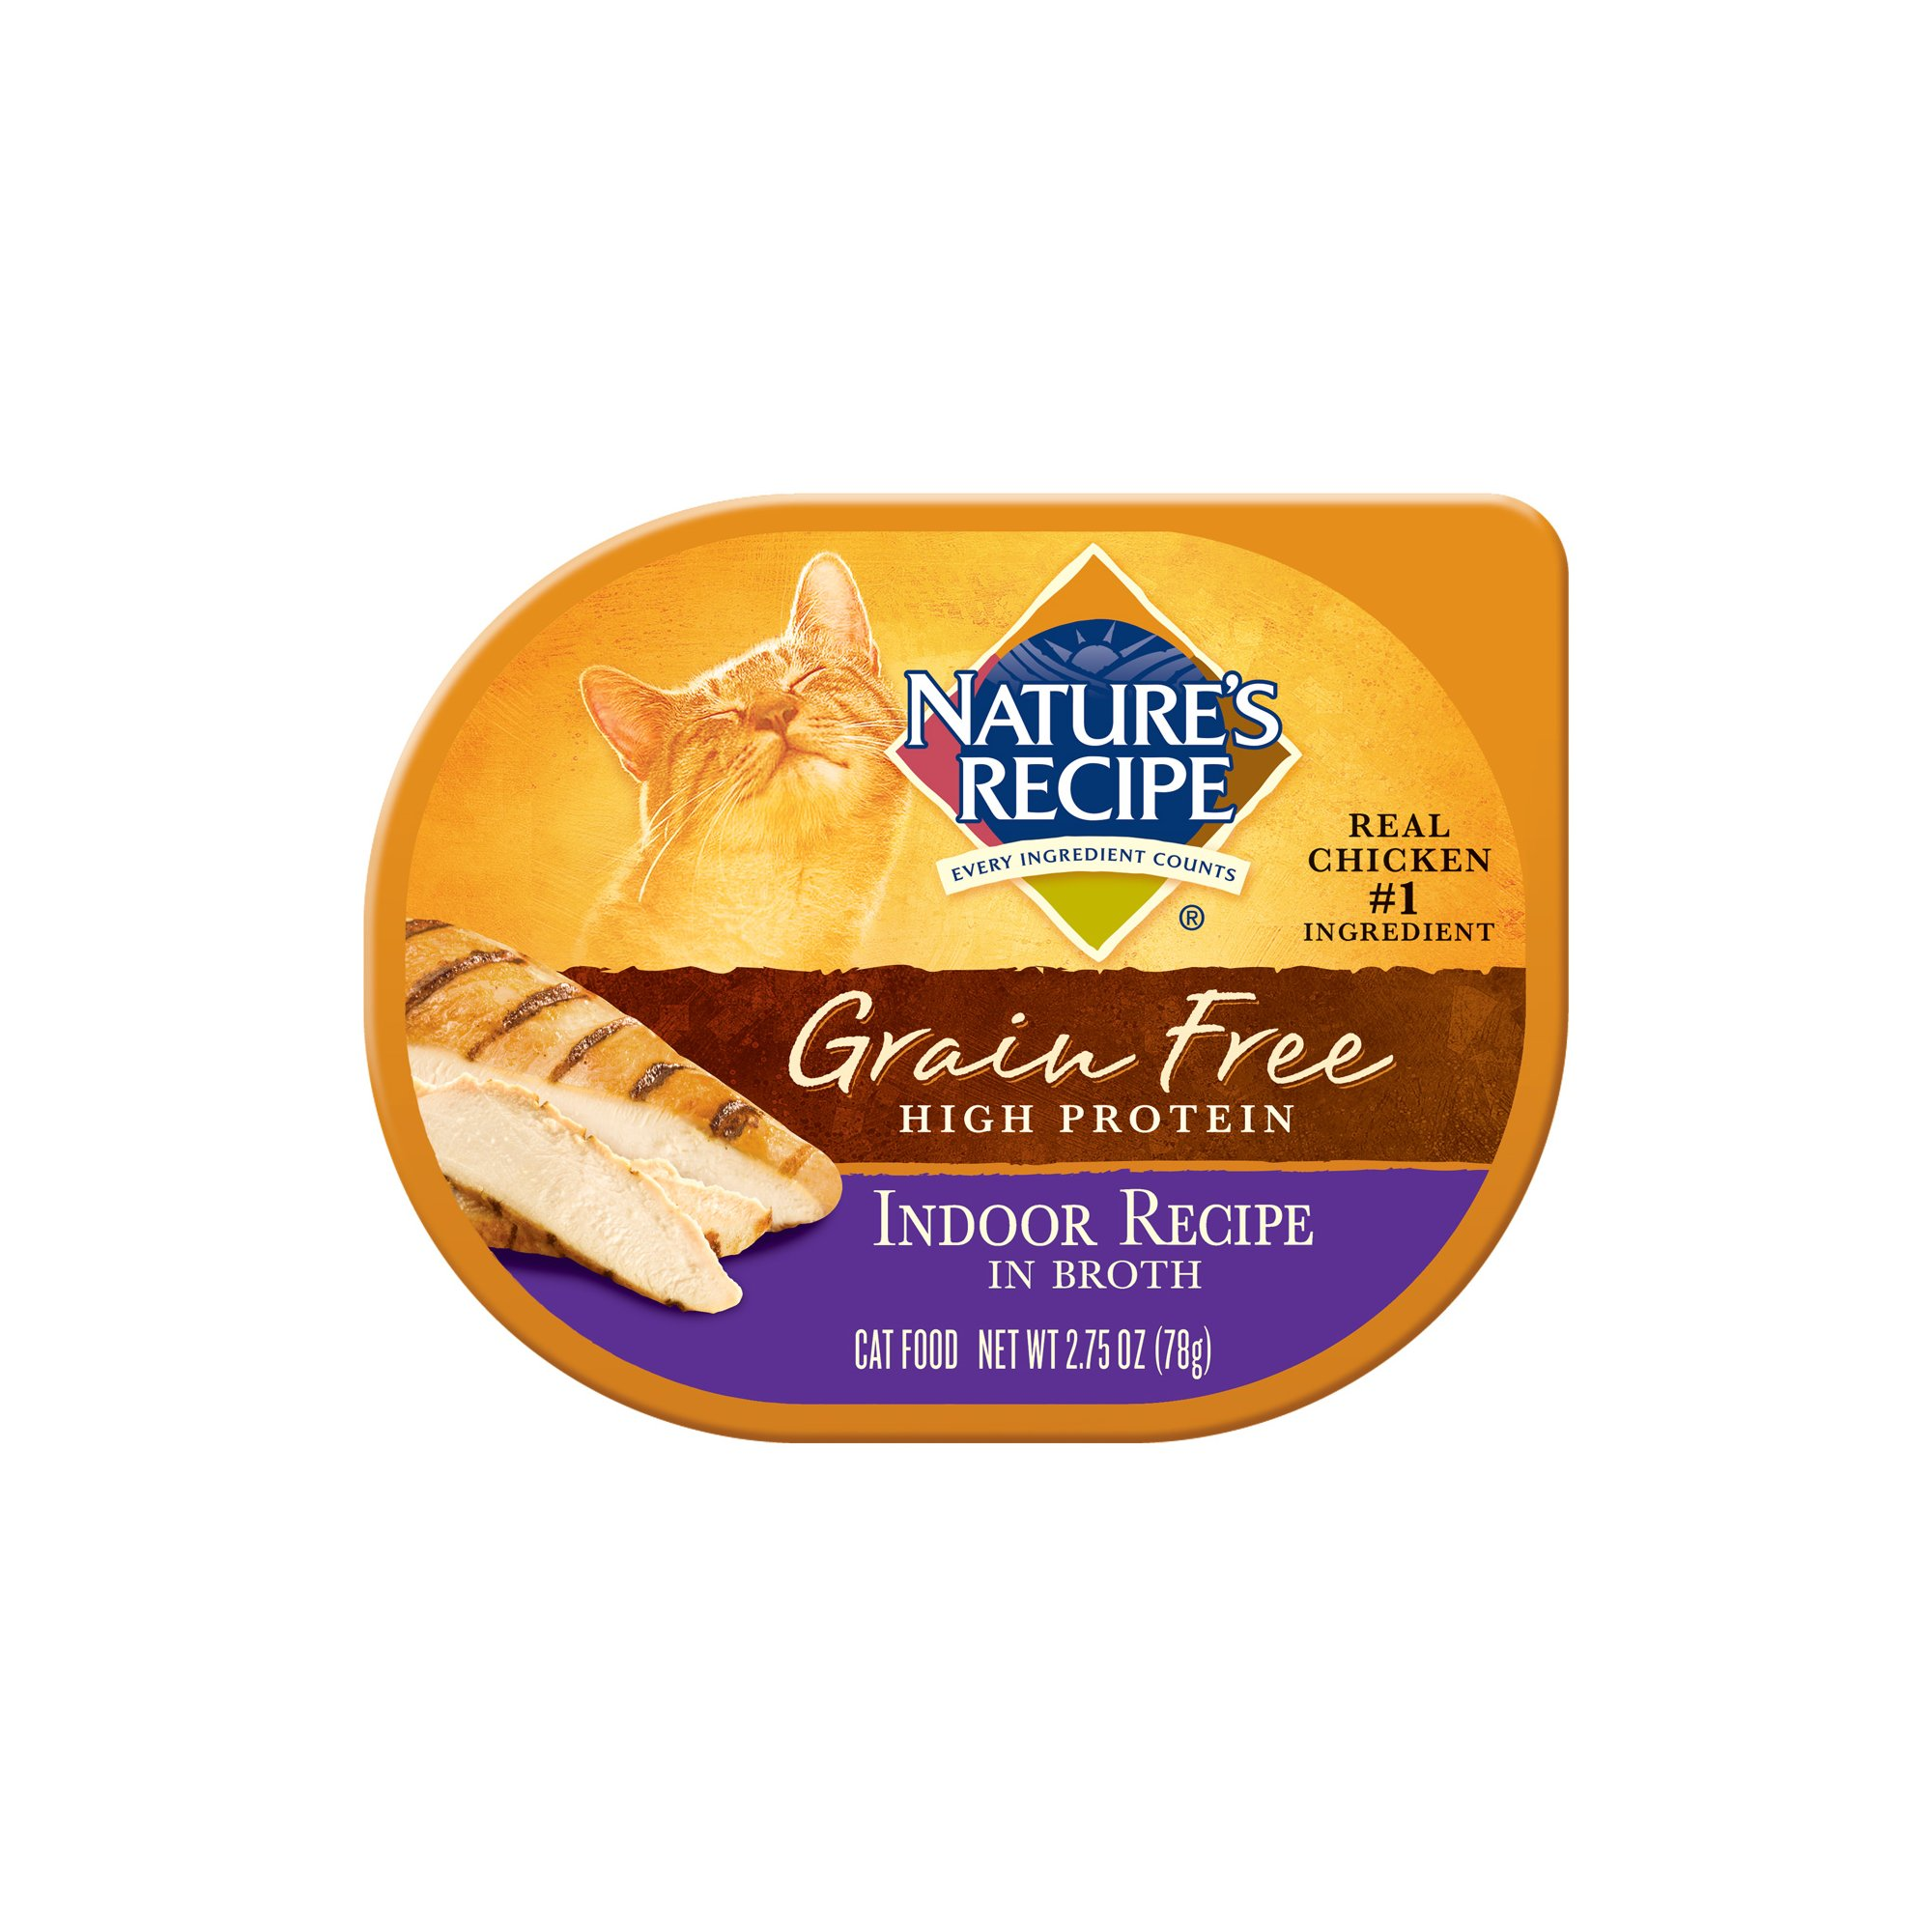 Nature's Recipe Grain Free Indoor Cat Food Trays